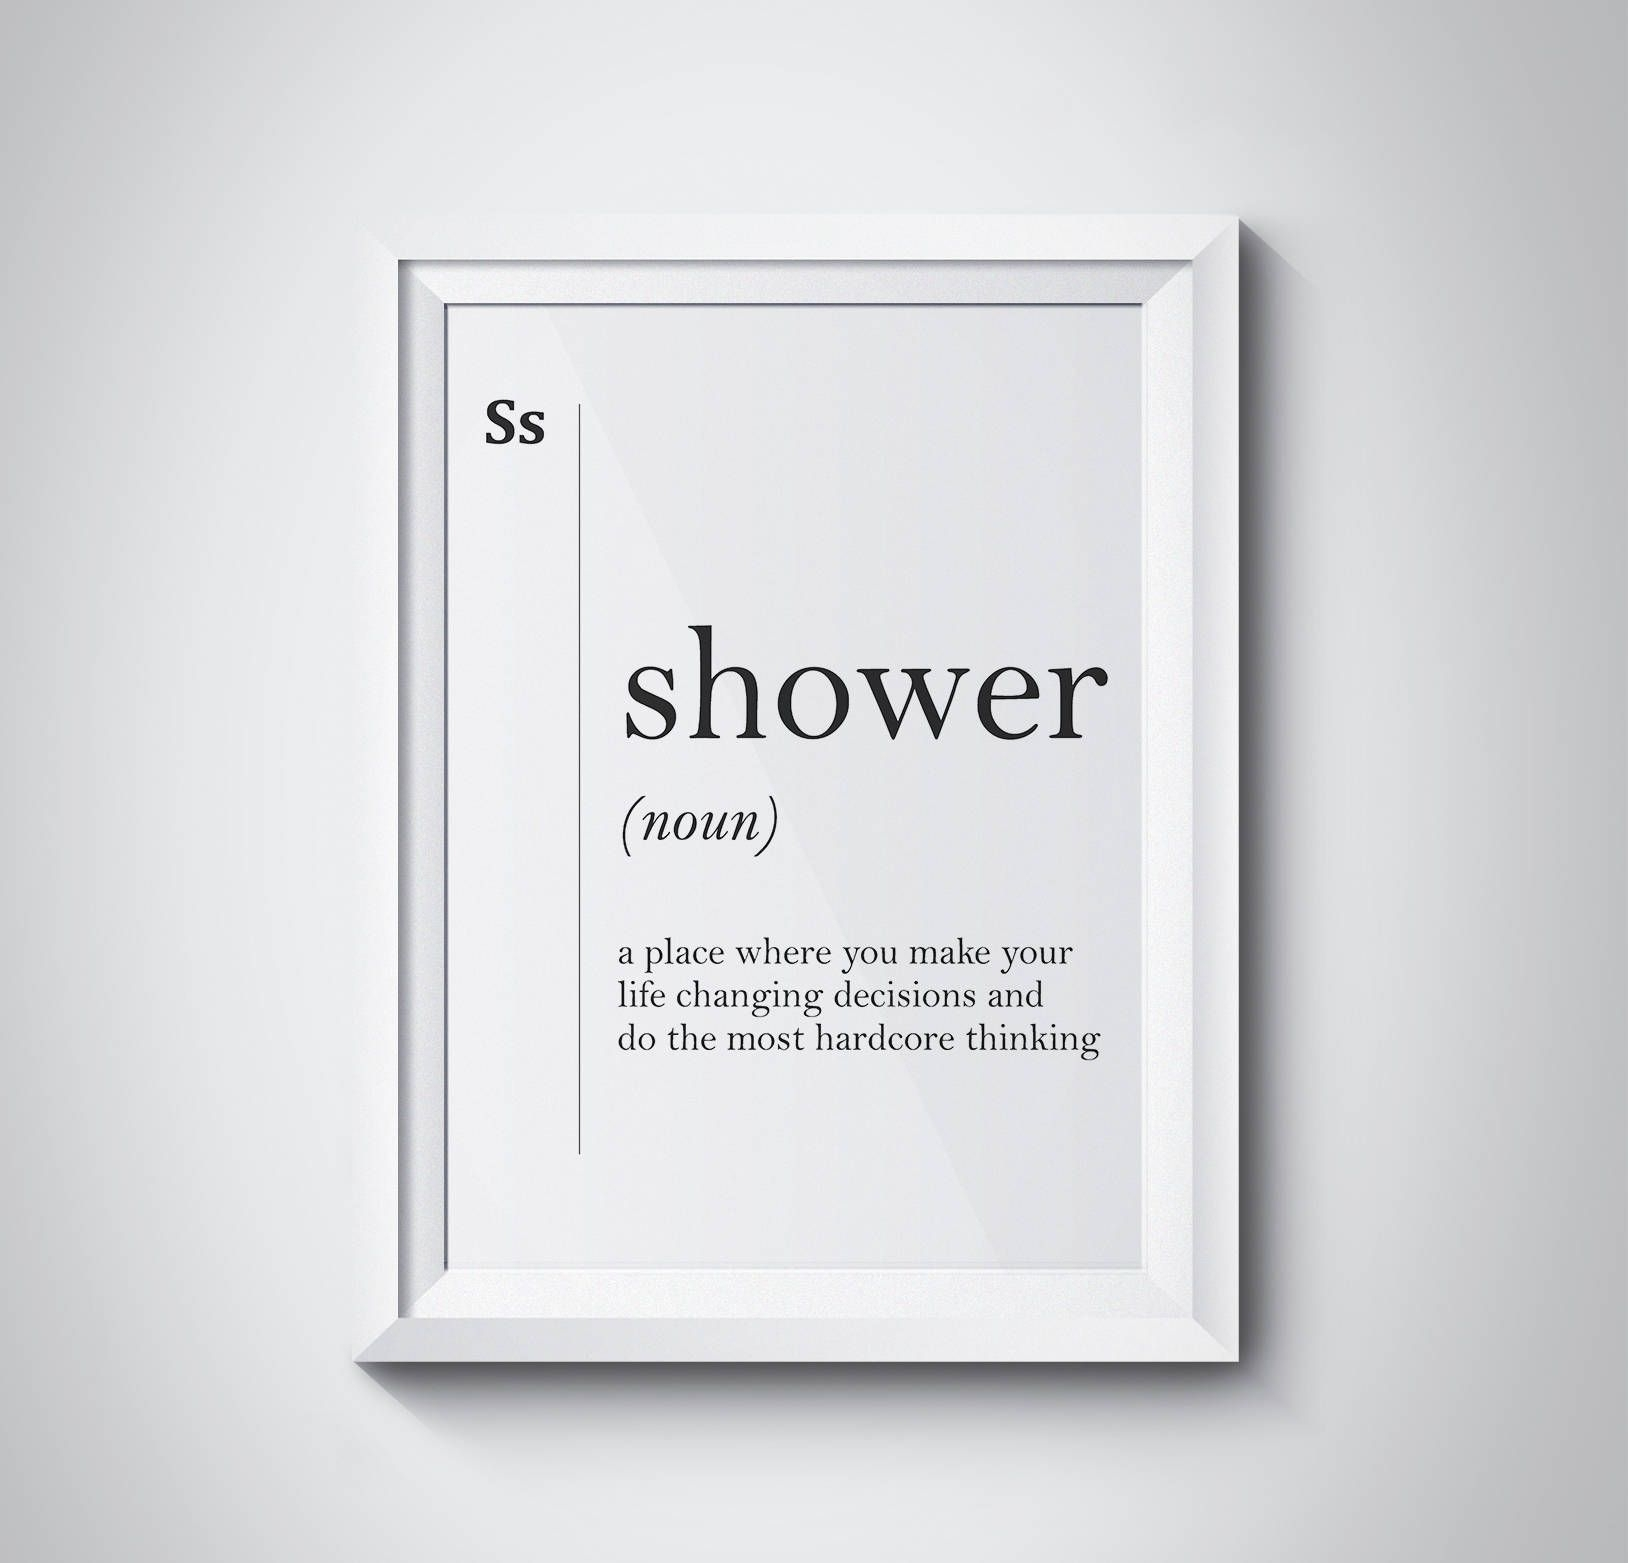 Shower Definition Bathroom Print Bathroom Wall Art Funny Bathroom With Regard To Most Up To Date Wall Art For Bathroom (Gallery 3 of 20)